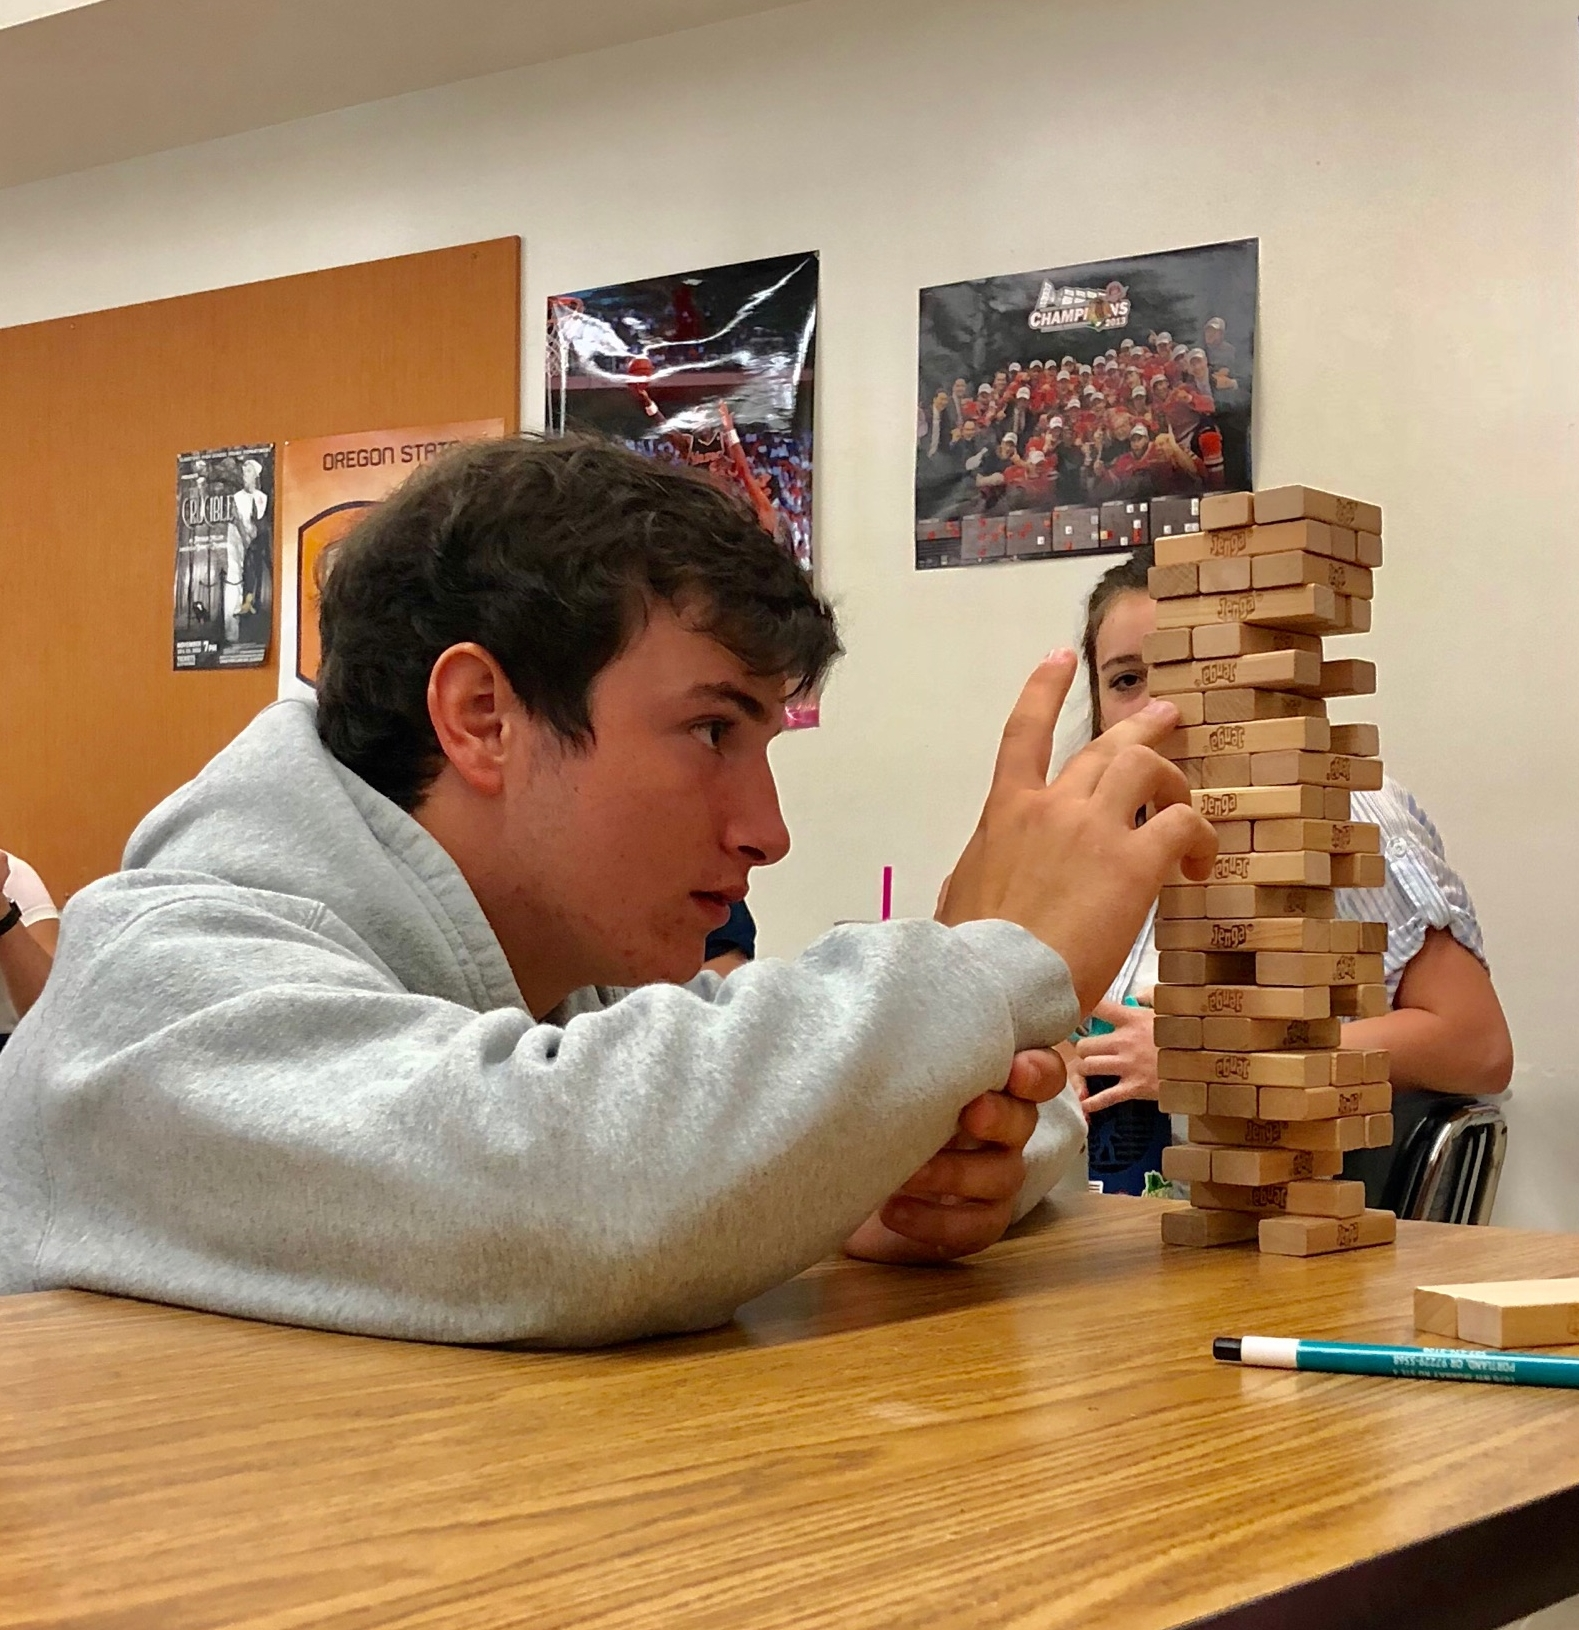 Concentration games such as Jenga can cuiltivate greater attention span and focus.  Keep games light and fun for maximal results.